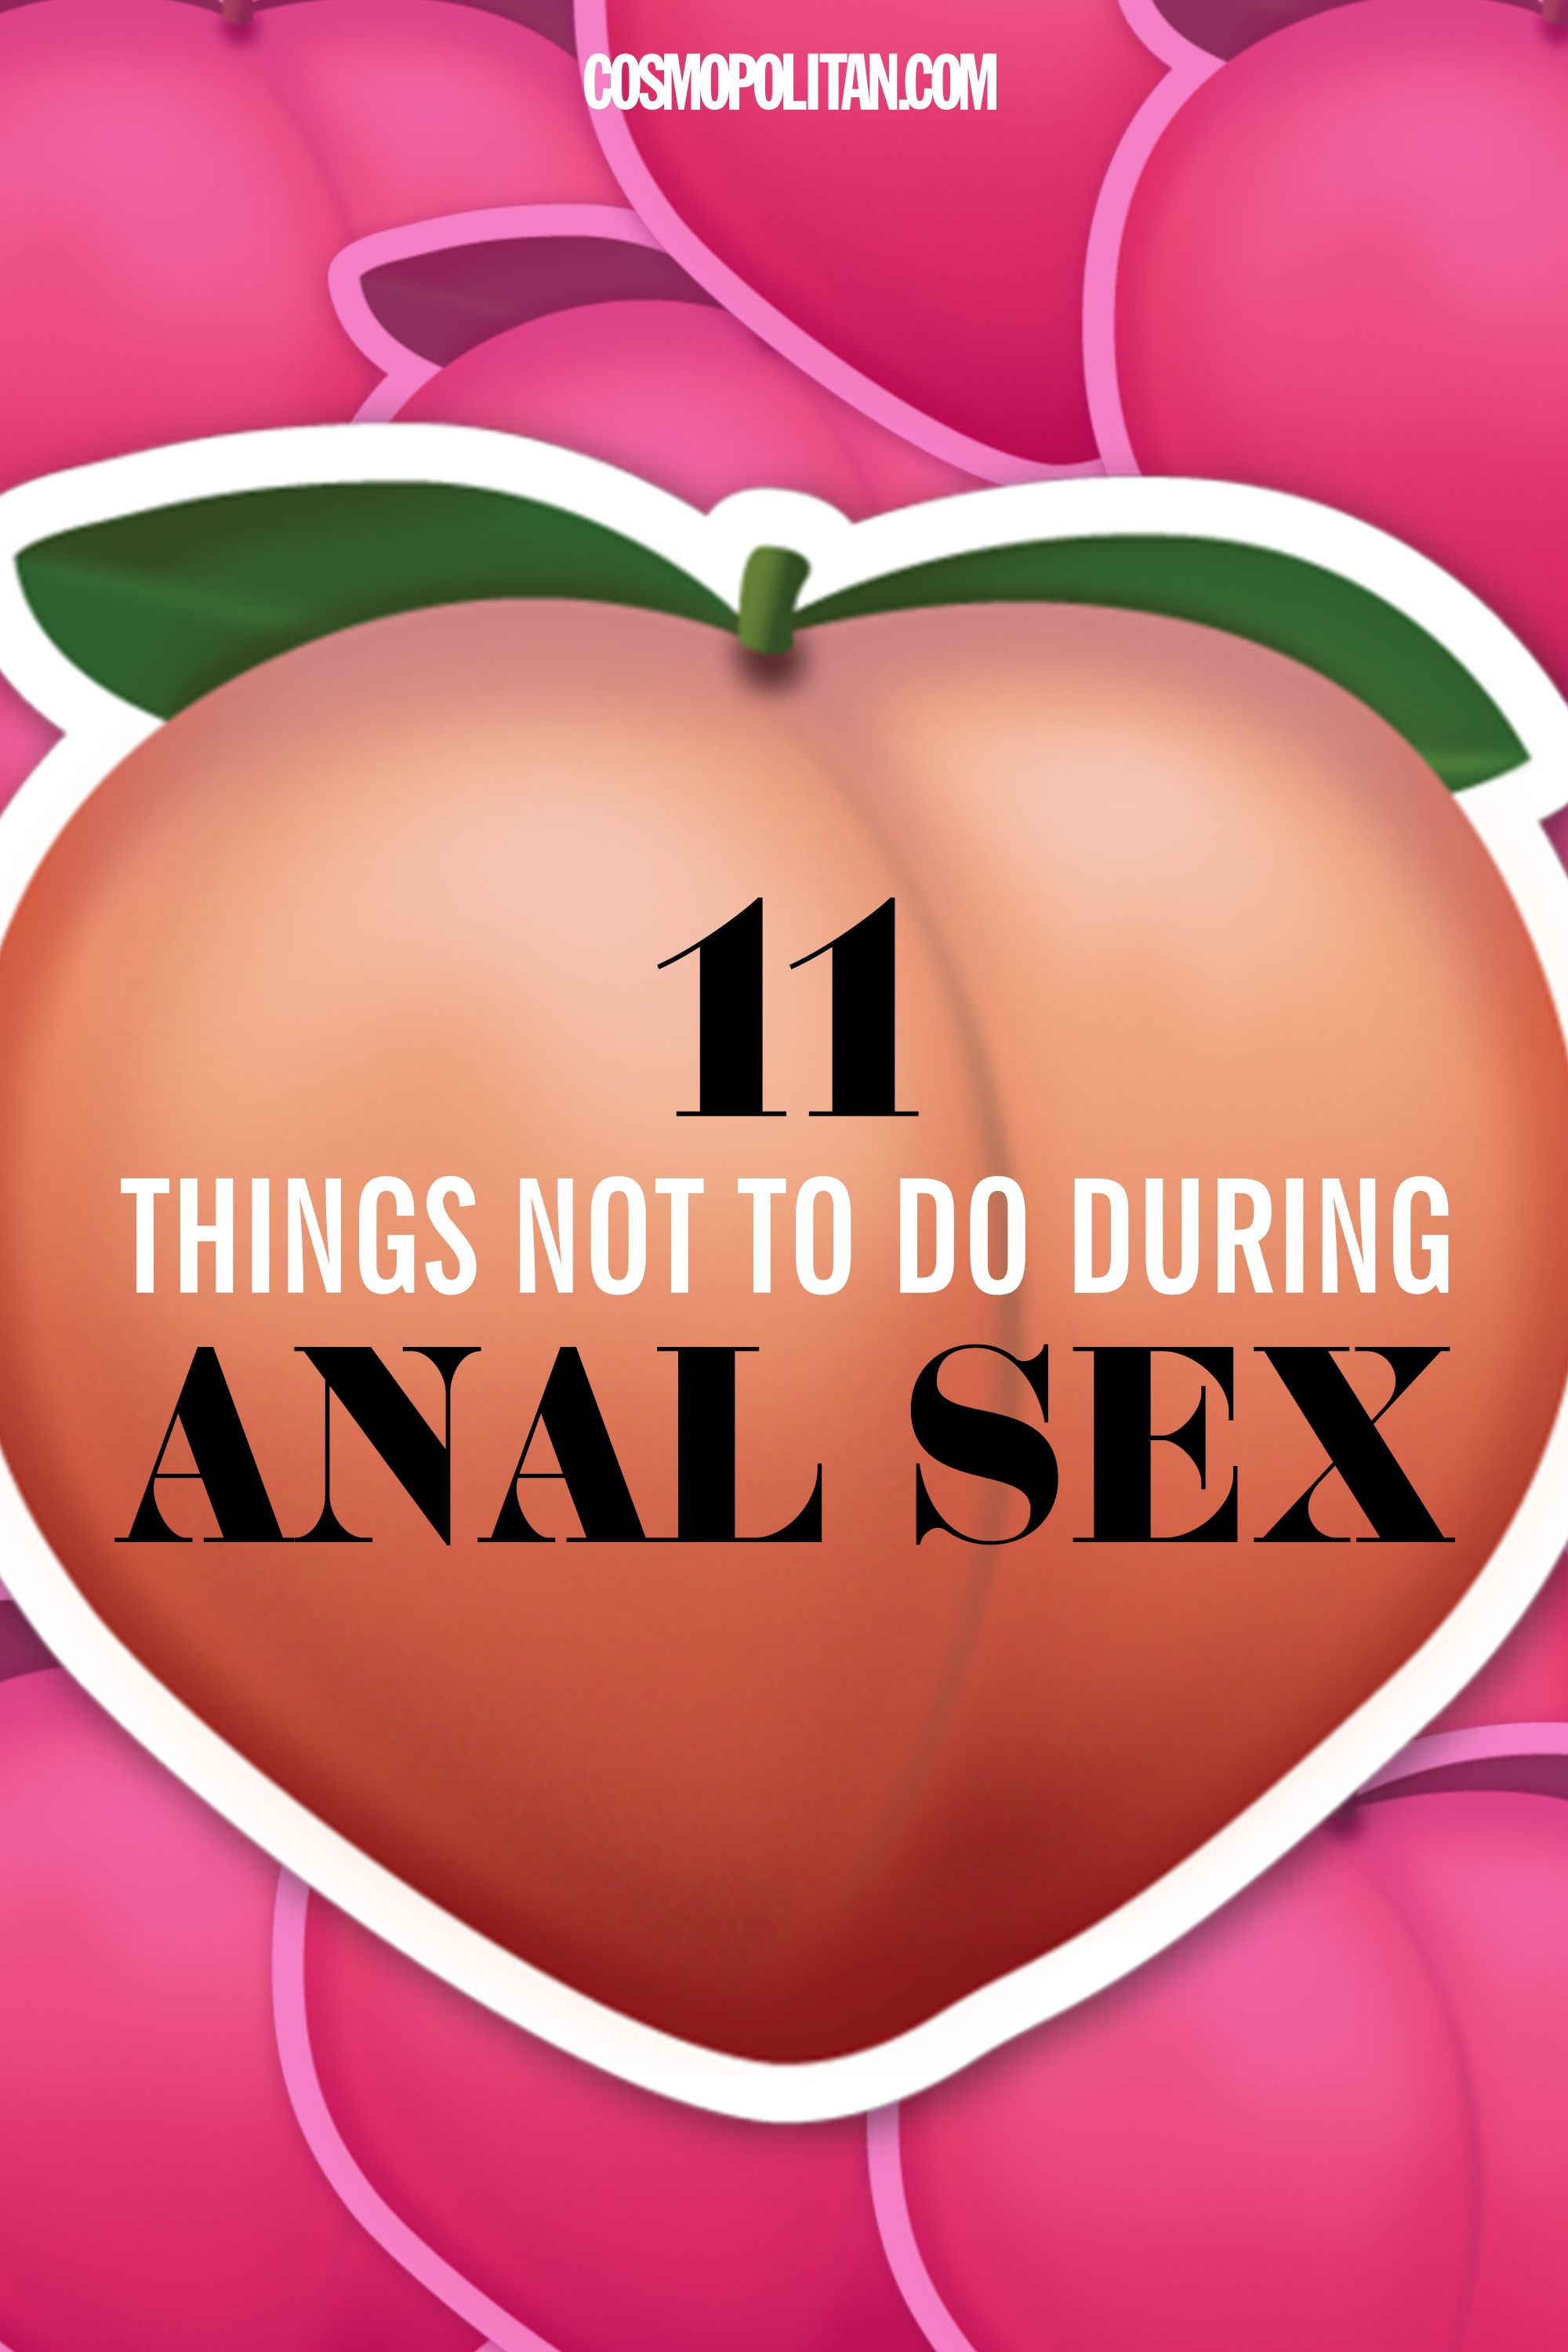 Practicing safe anal sex